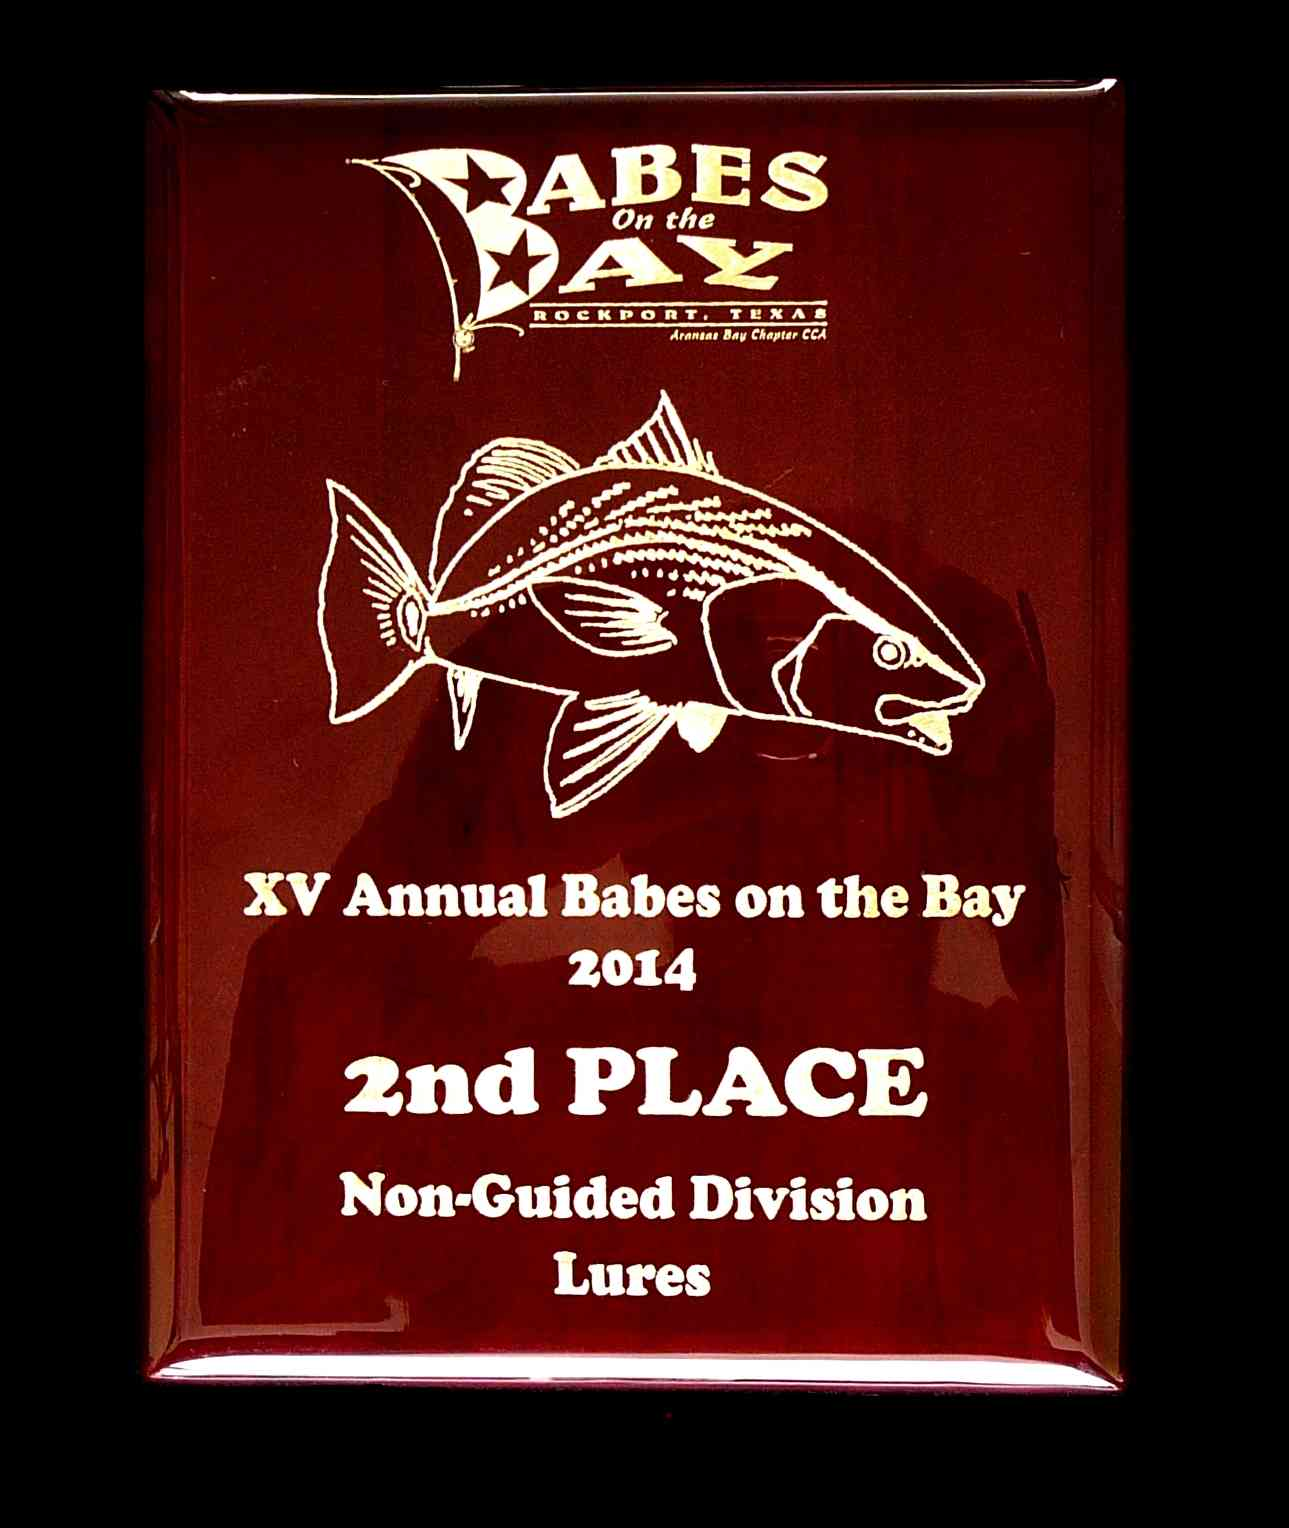 Babes_on_the_Bay_redfish_plaque.jpg